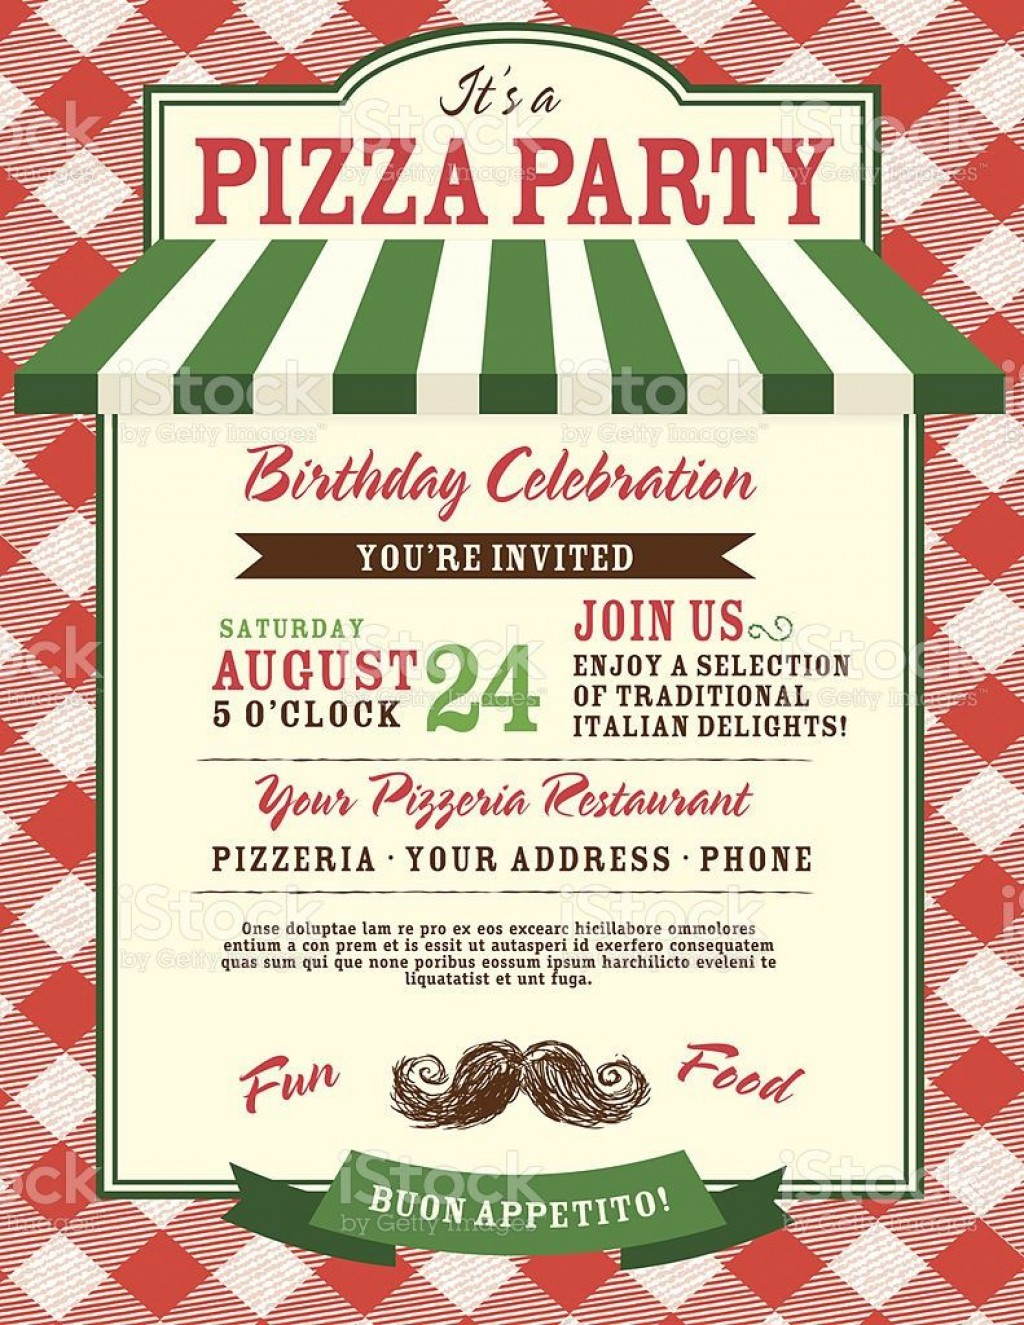 005 Astounding Pizza Party Invitation Template Free High Definition  PrintableLarge